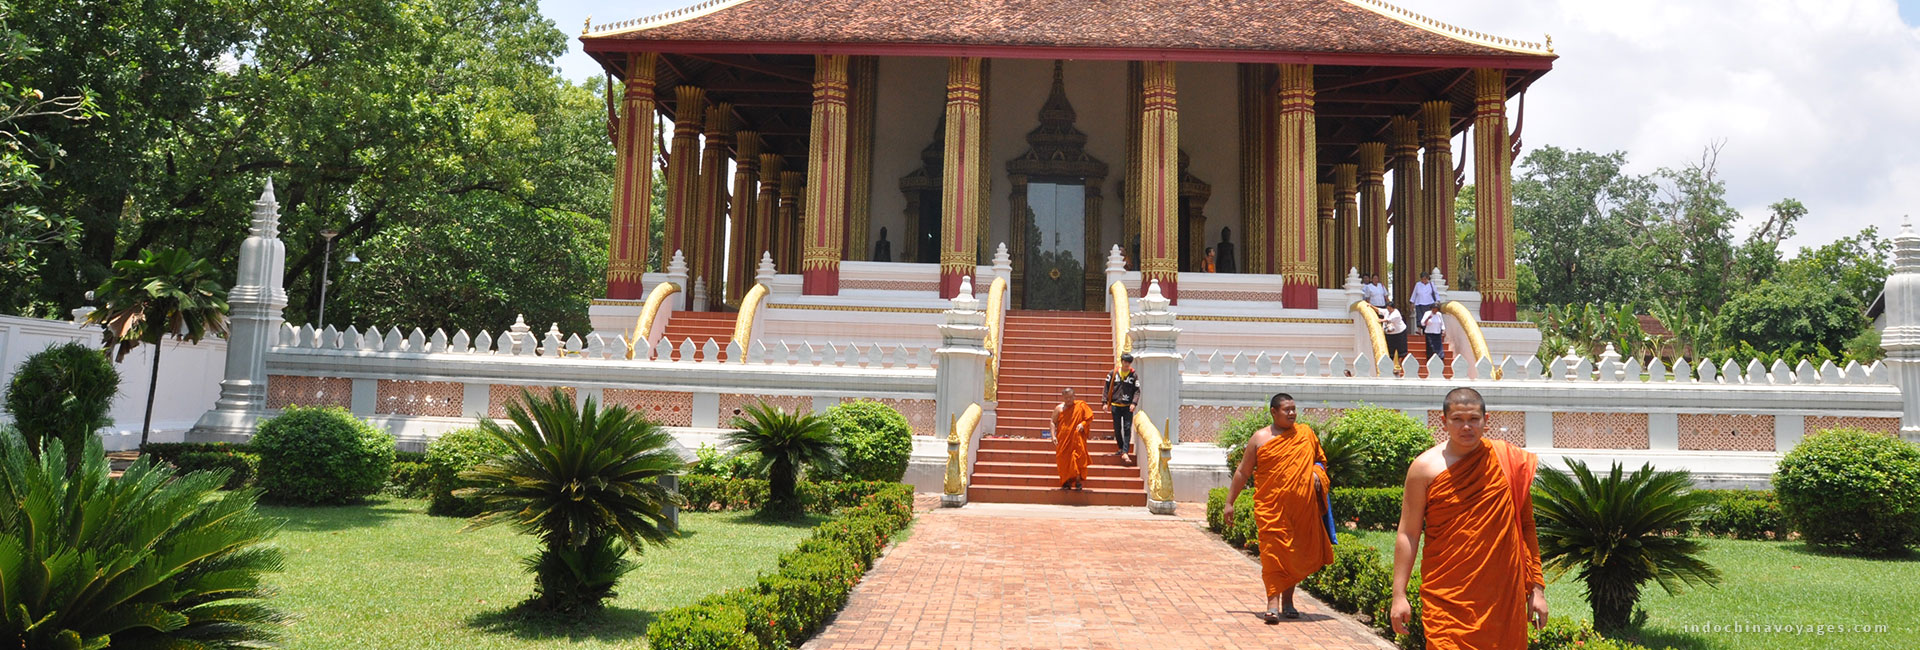 Luang Prabang Marvelous Day Tour